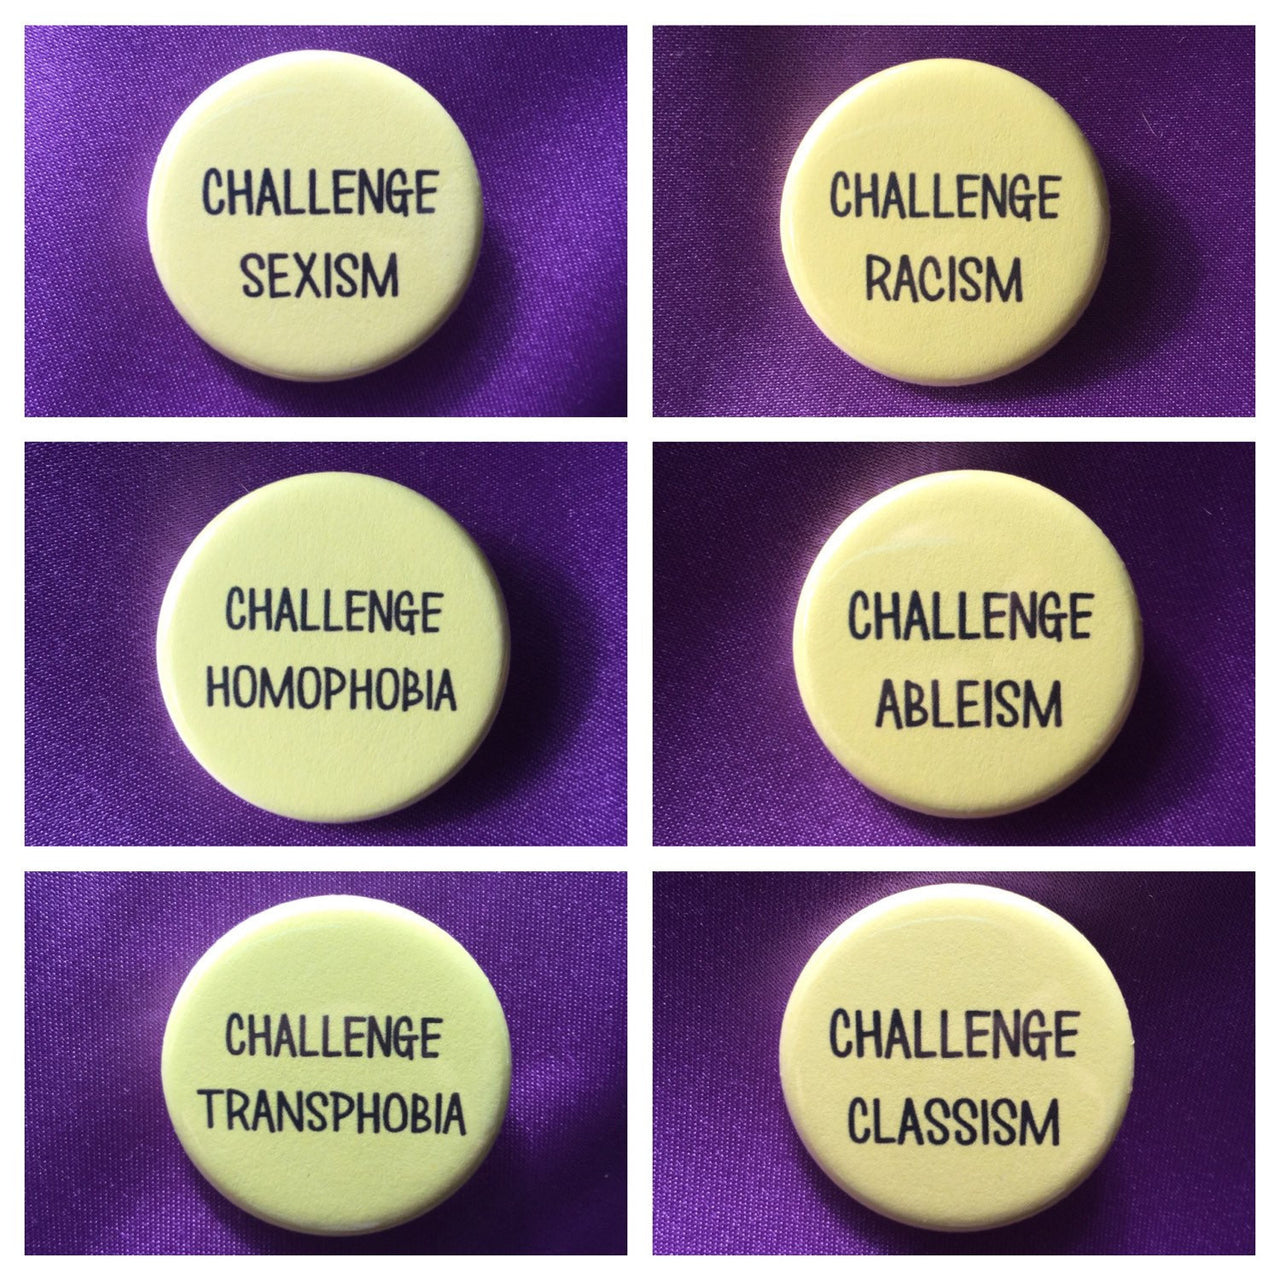 Challenge sexism / Challenge racism / Challenge transphobia / Challenge homophobia / Challenge ableism/classism - Radical Buttons